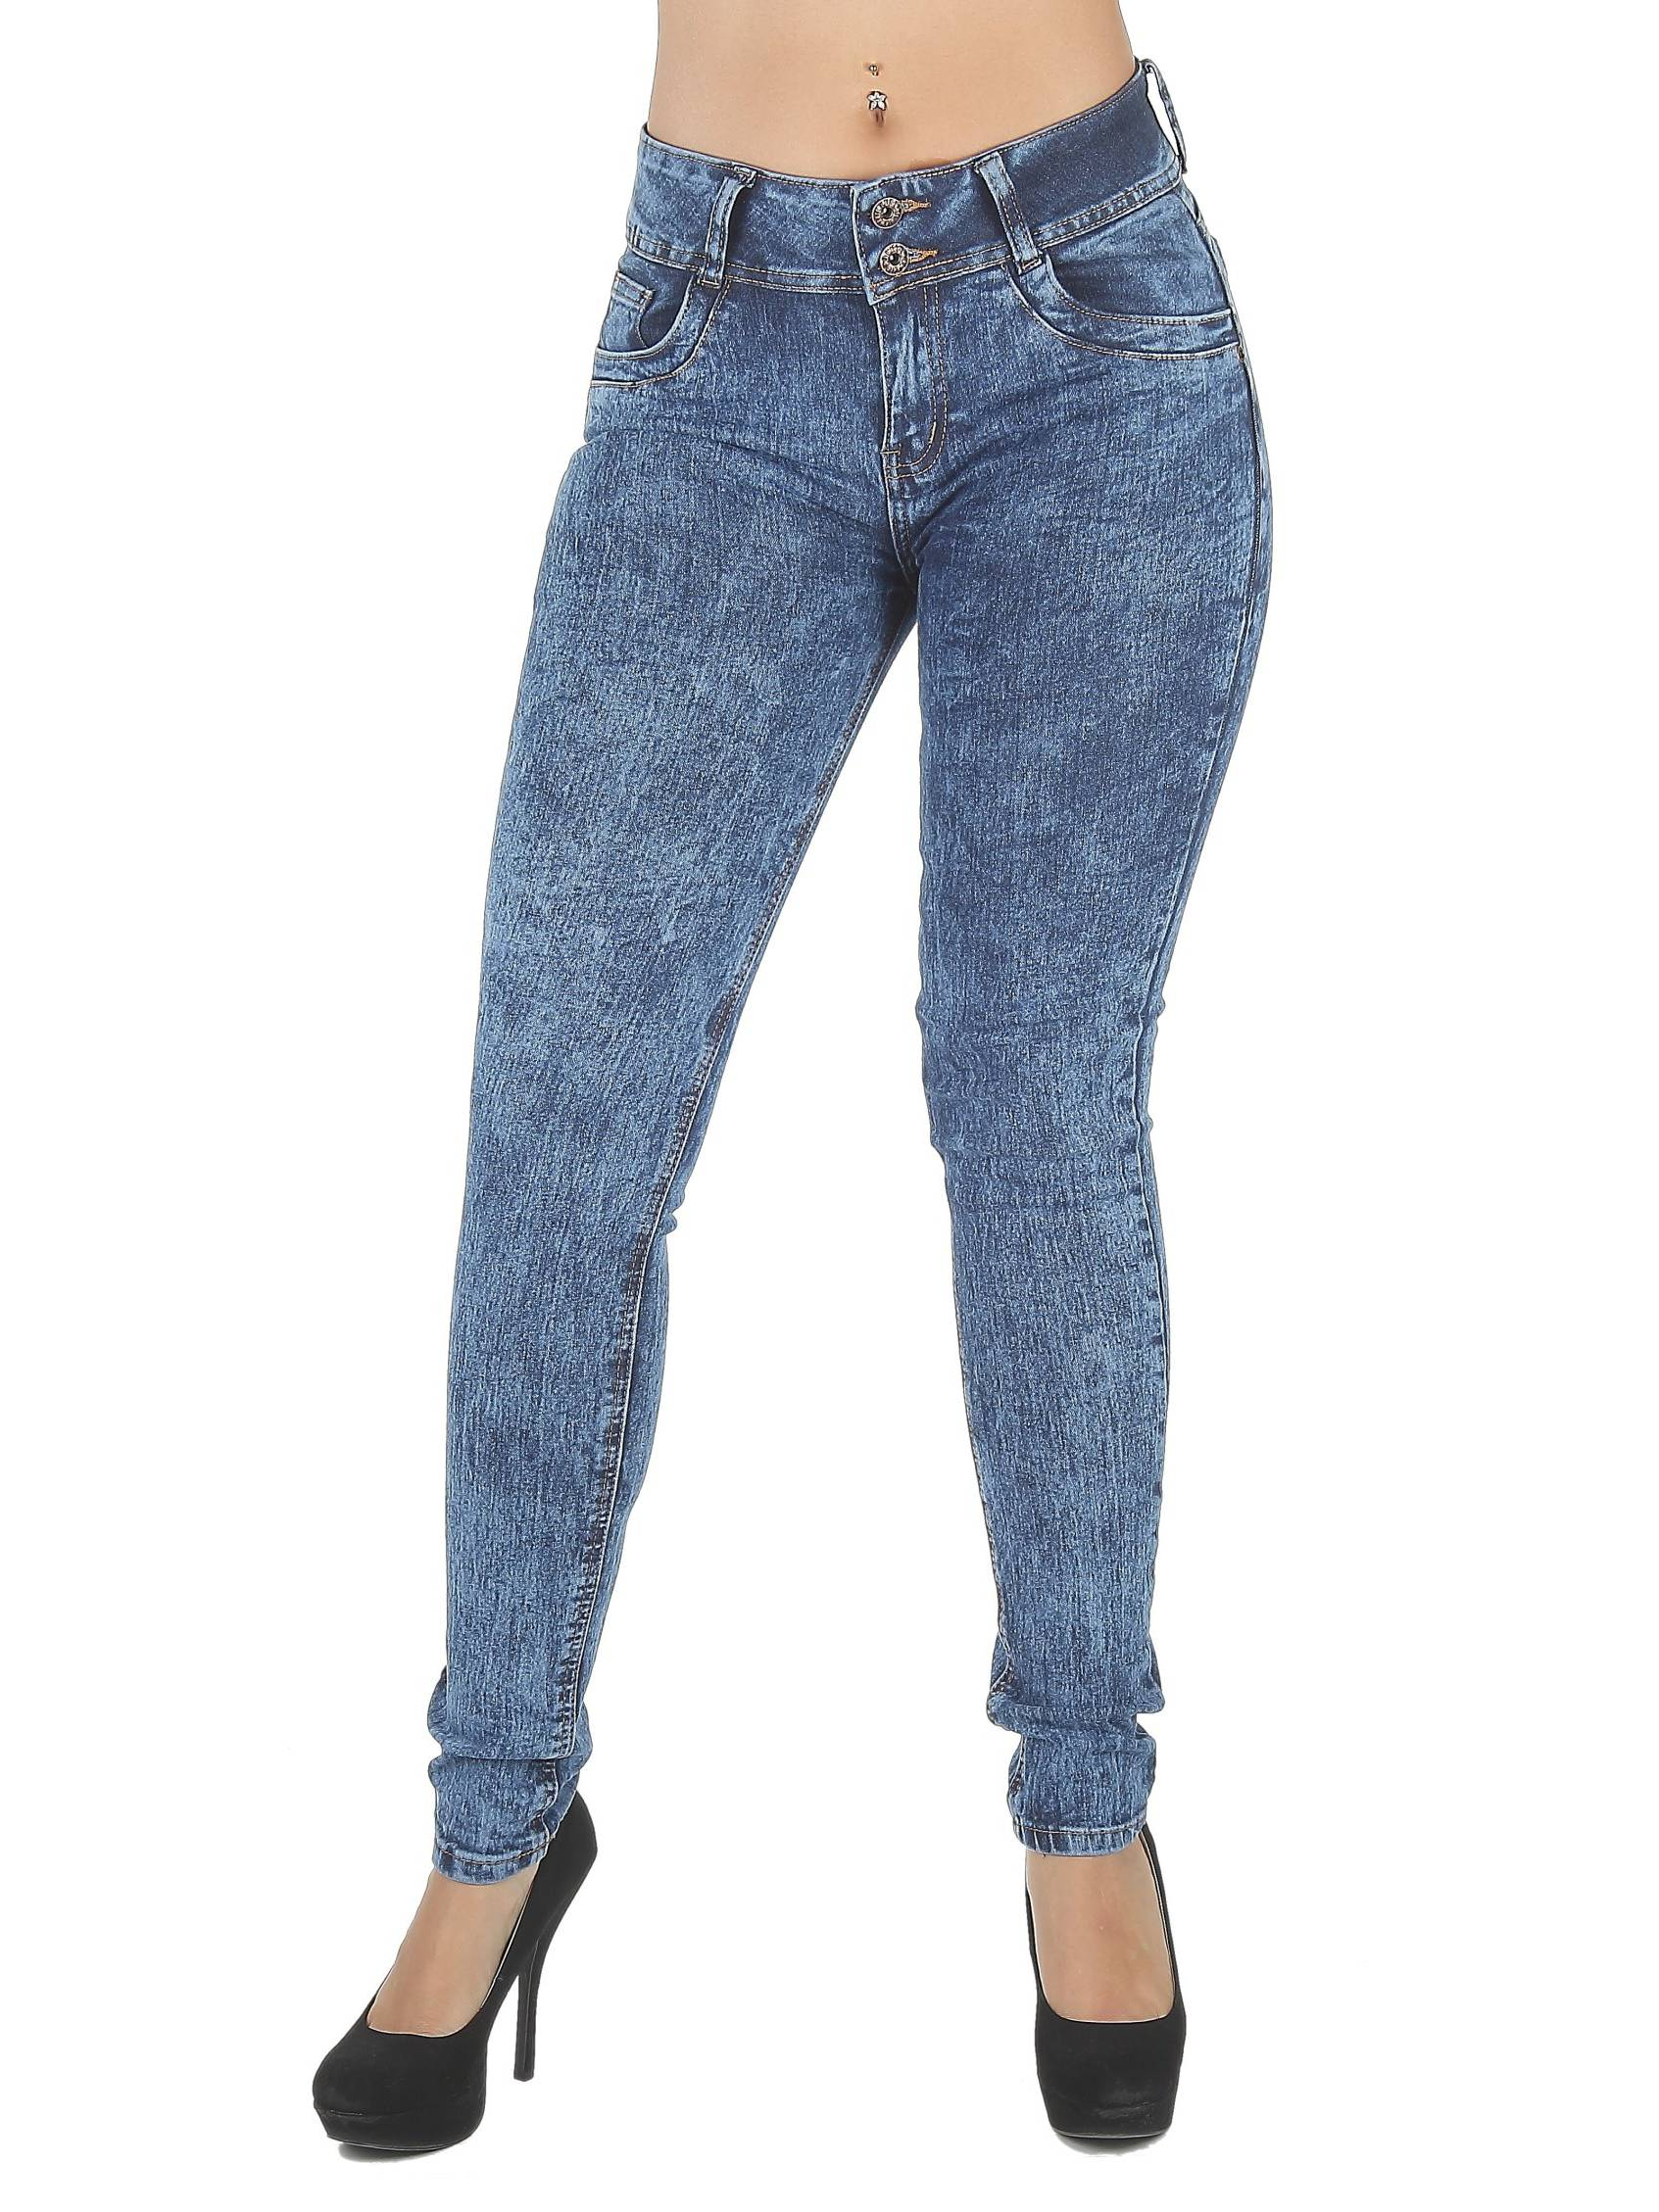 FWG0267 - Colombian Design, Butt Lift, Levanta Cola, Mid Waist Sexy Skinny Jeans